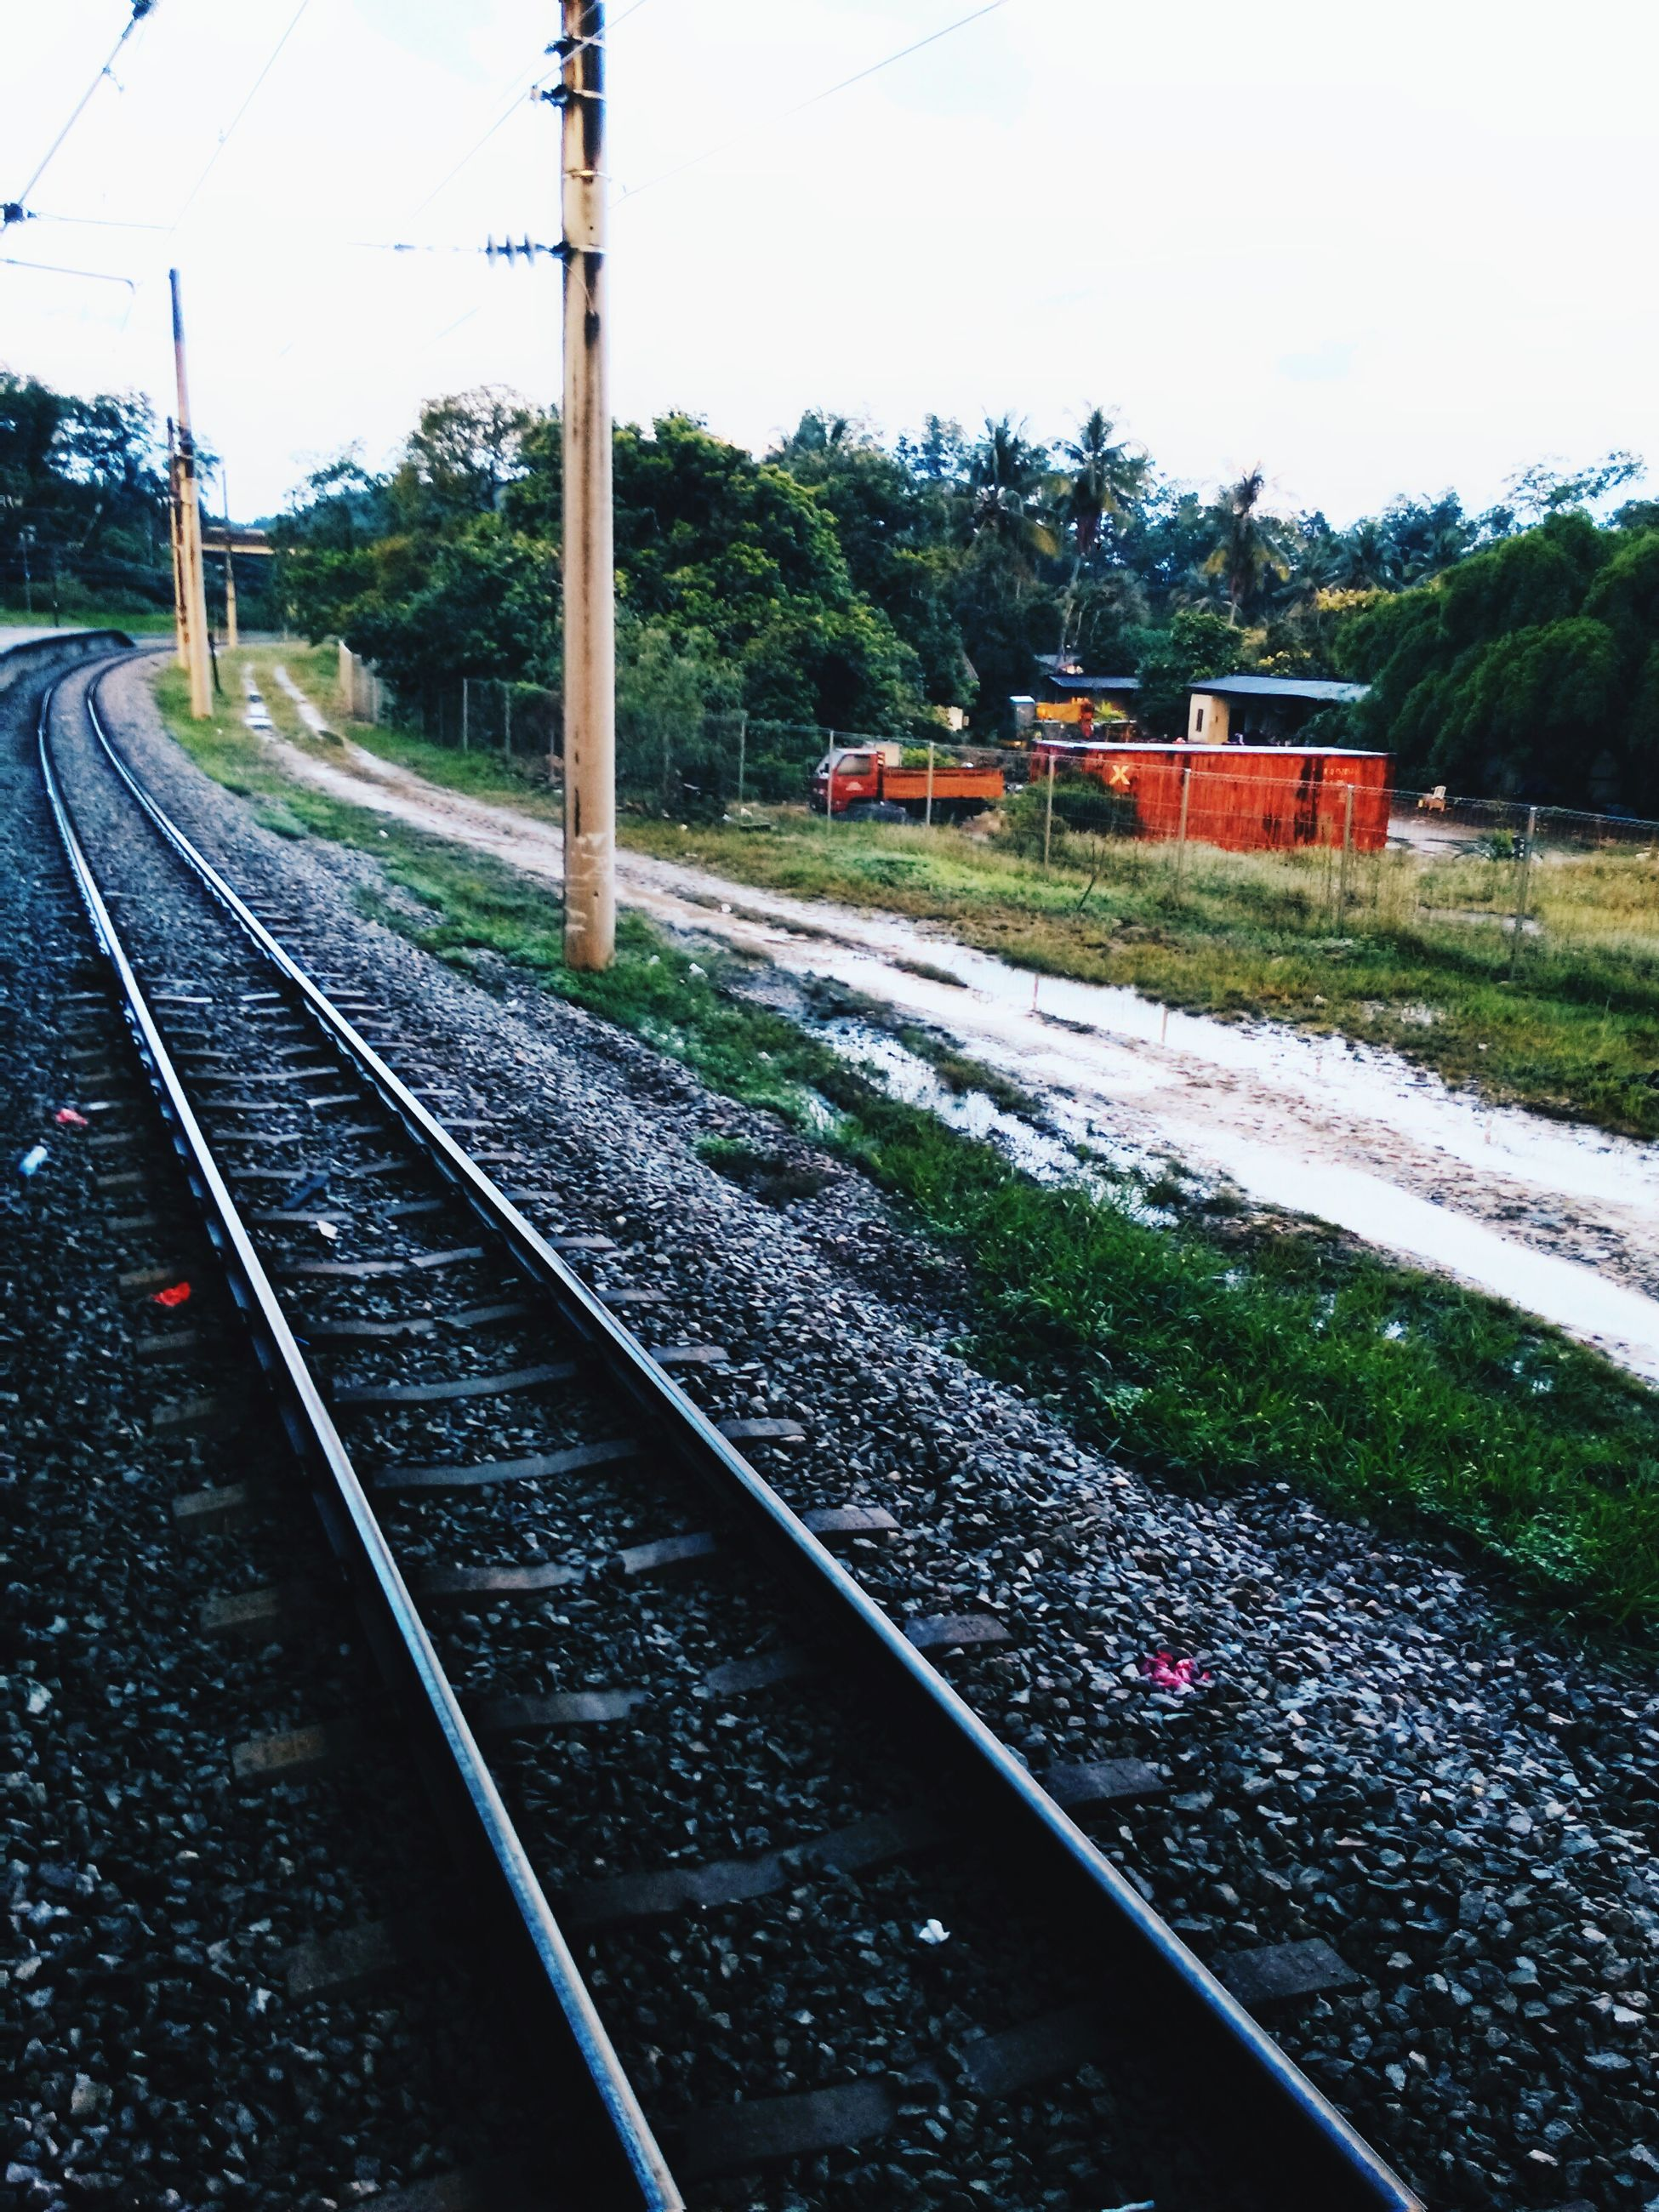 railroad track, transportation, rail transportation, public transportation, railroad station platform, train - vehicle, railway track, railroad station, mode of transport, tree, train, travel, high angle view, clear sky, diminishing perspective, vanishing point, passenger train, the way forward, power line, day